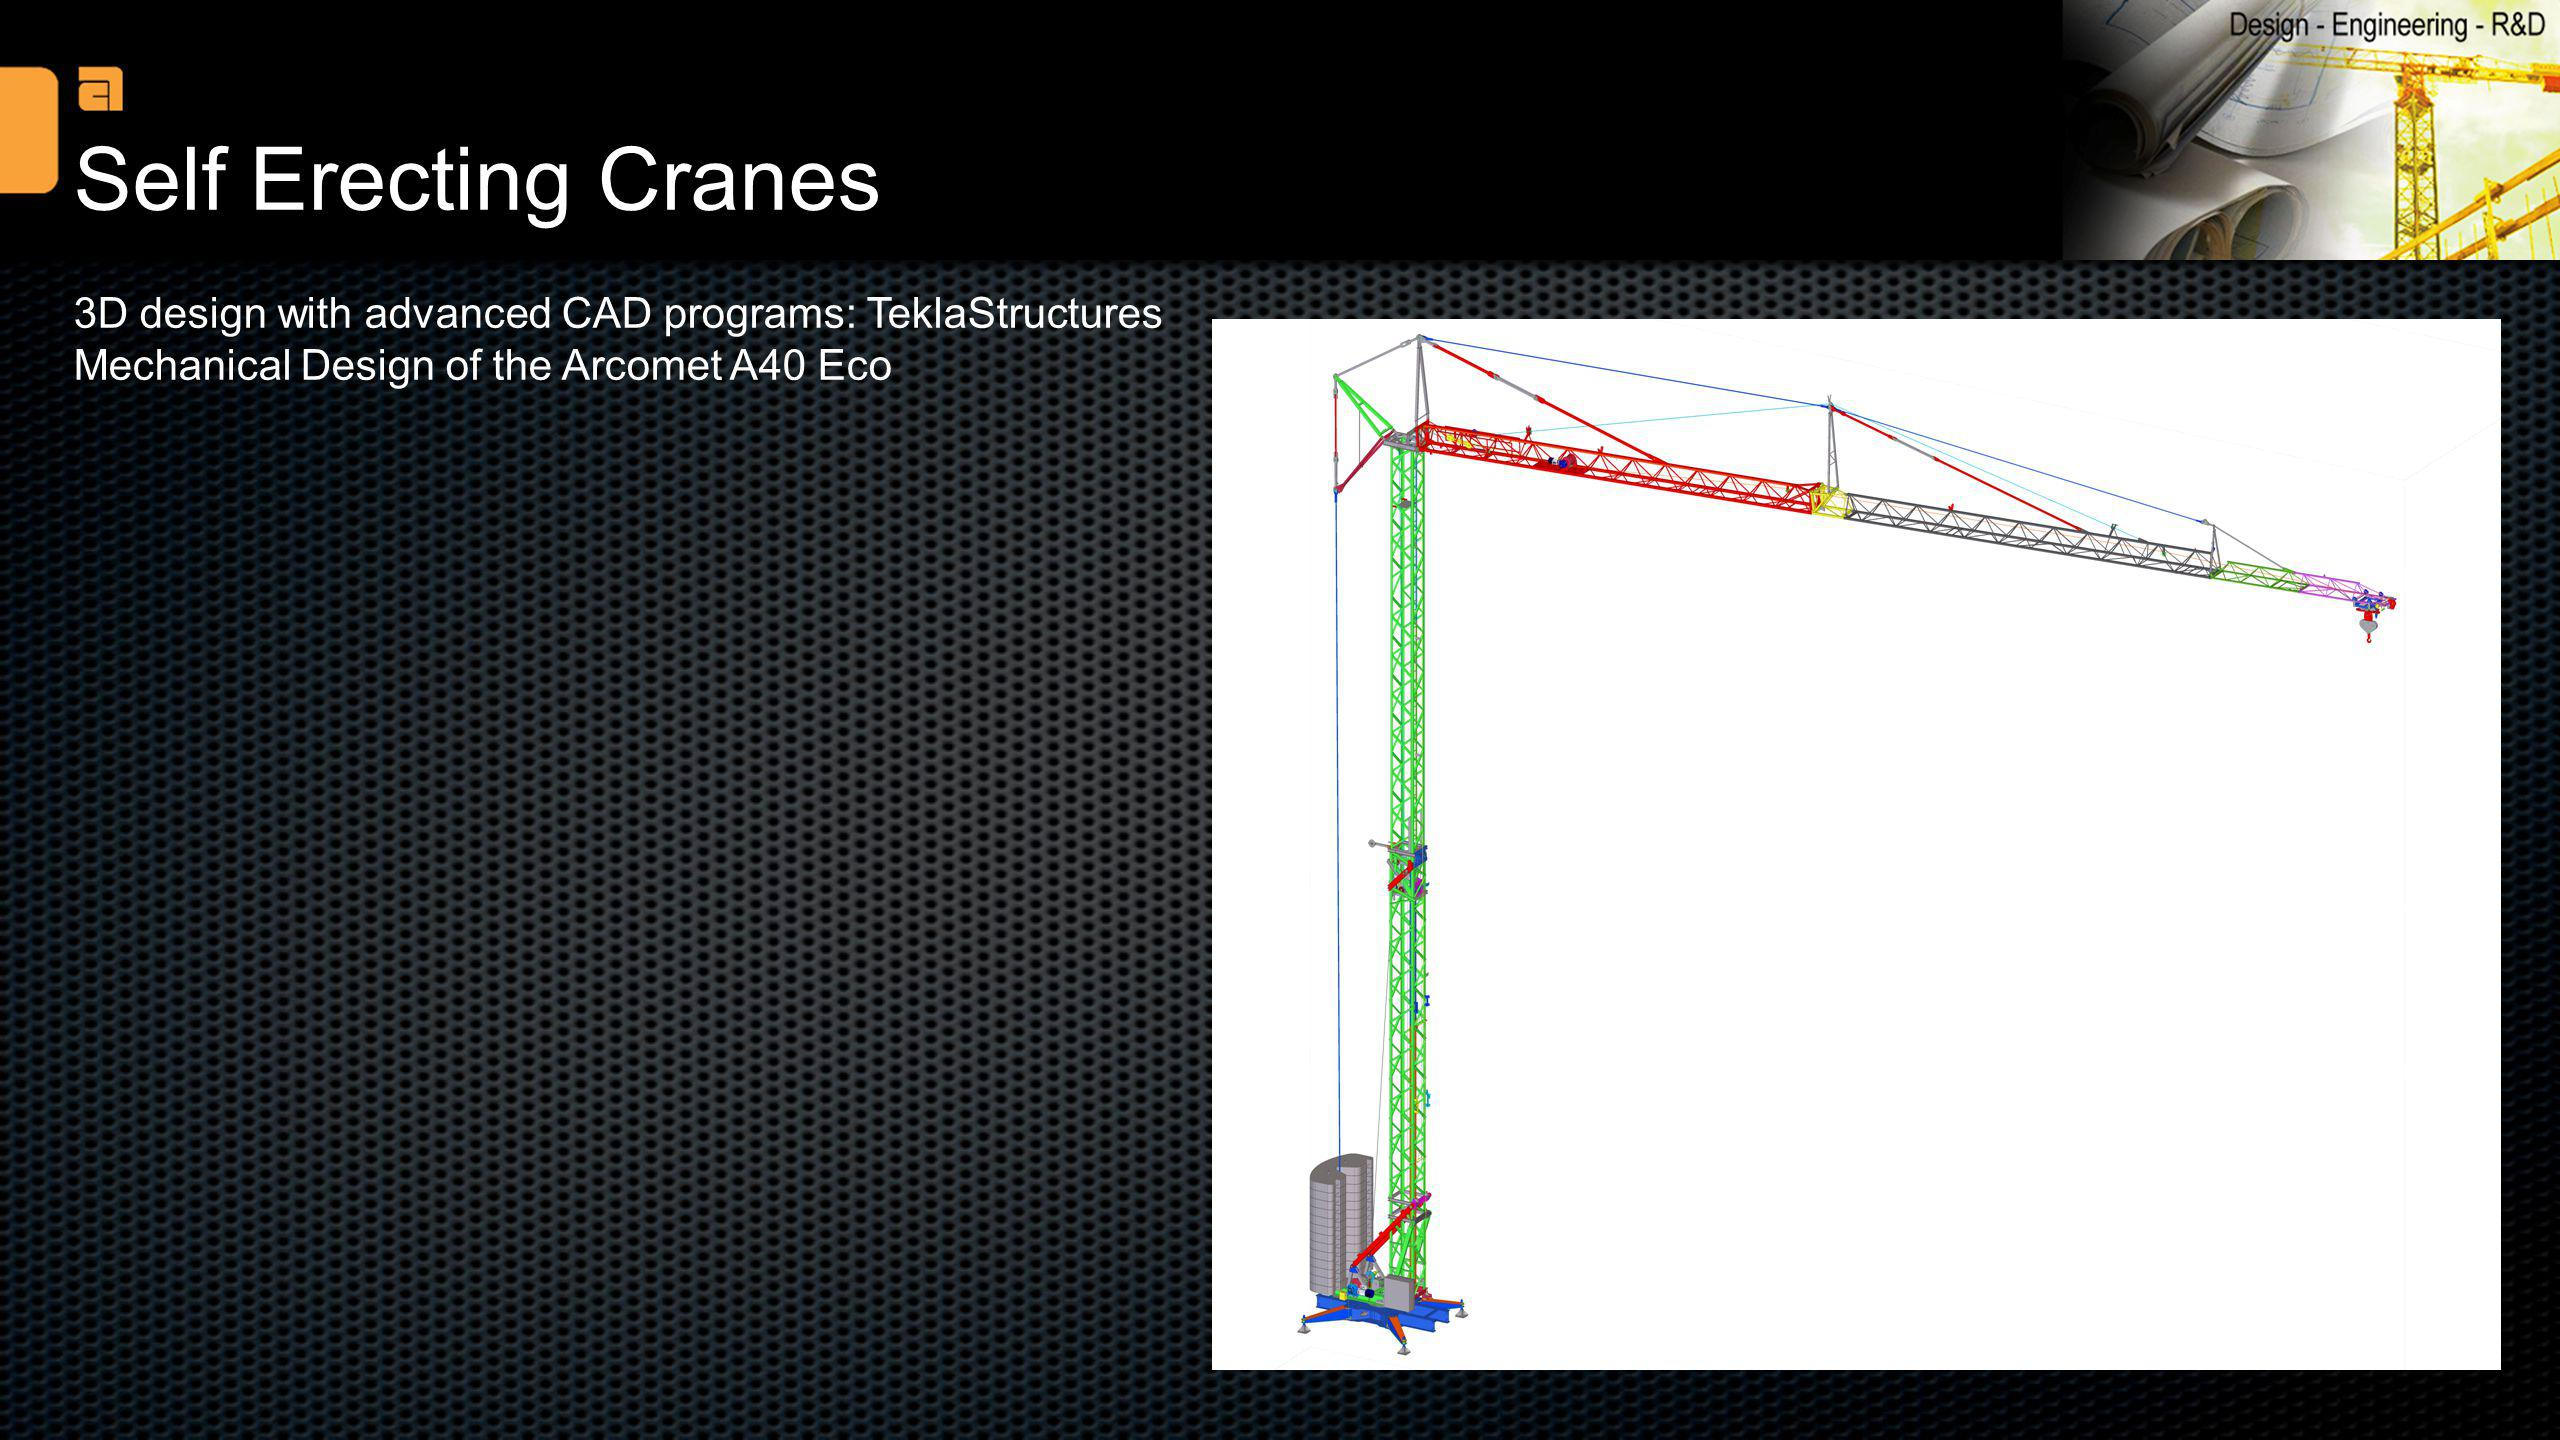 Self Erecting Cranes 3D design with advanced CAD programs: TeklaStructures.